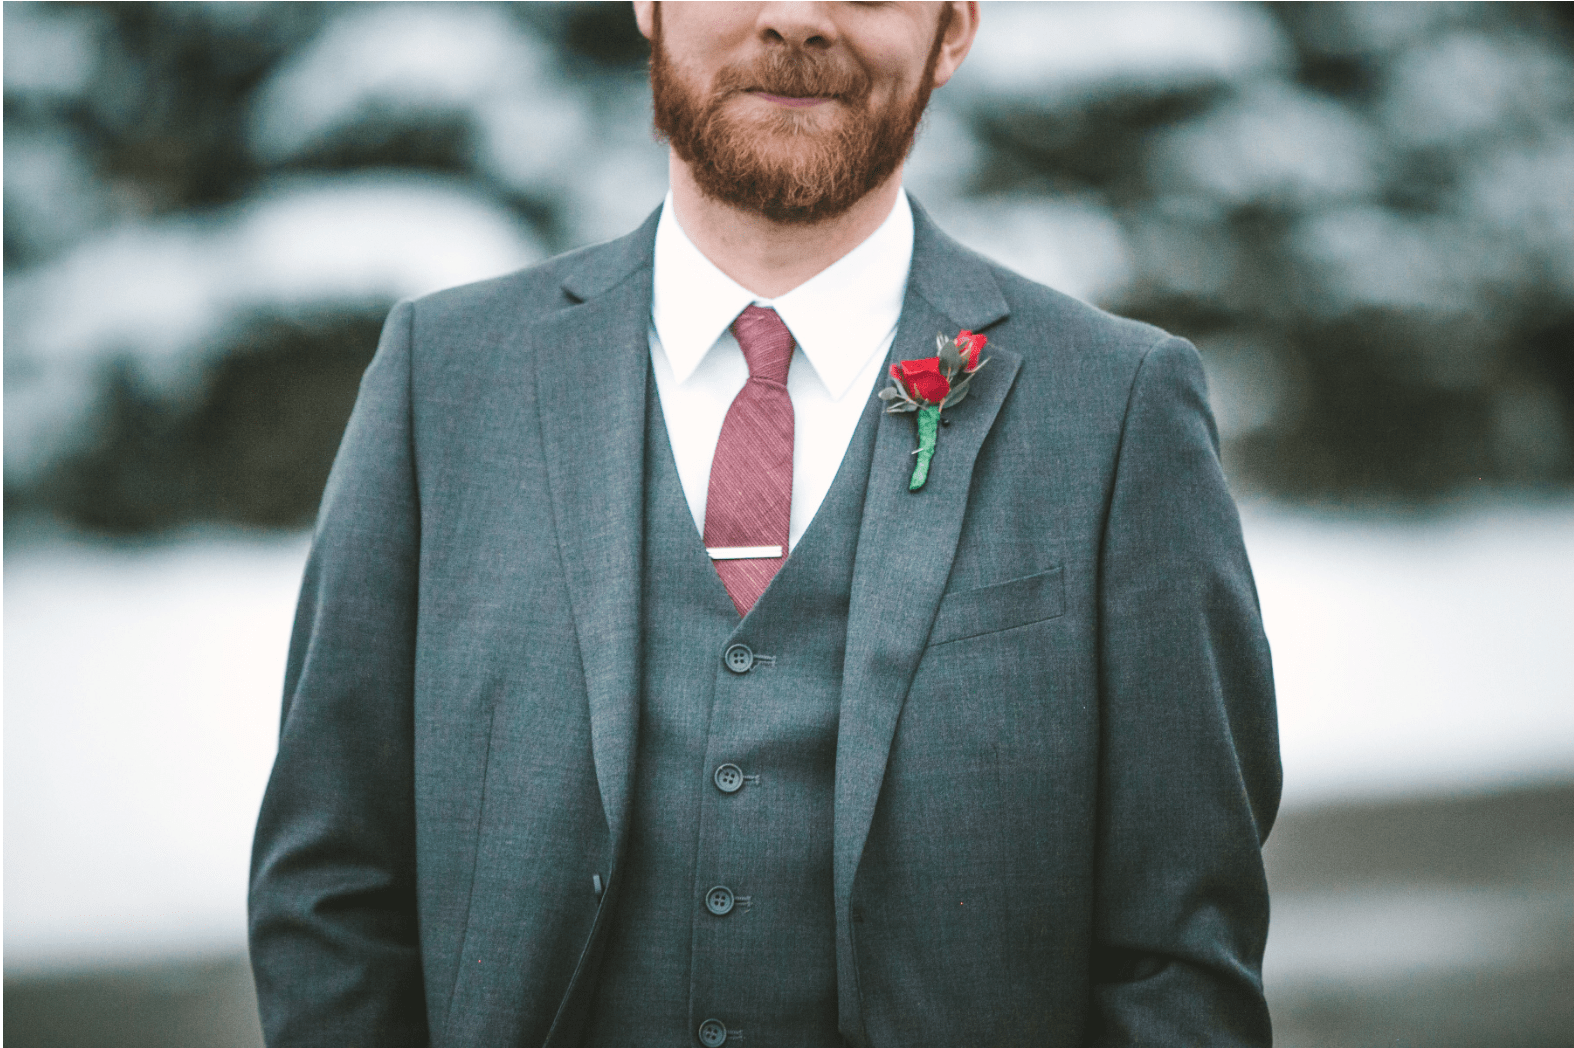 What to consider when deciding between a custom suit and a tuxedo